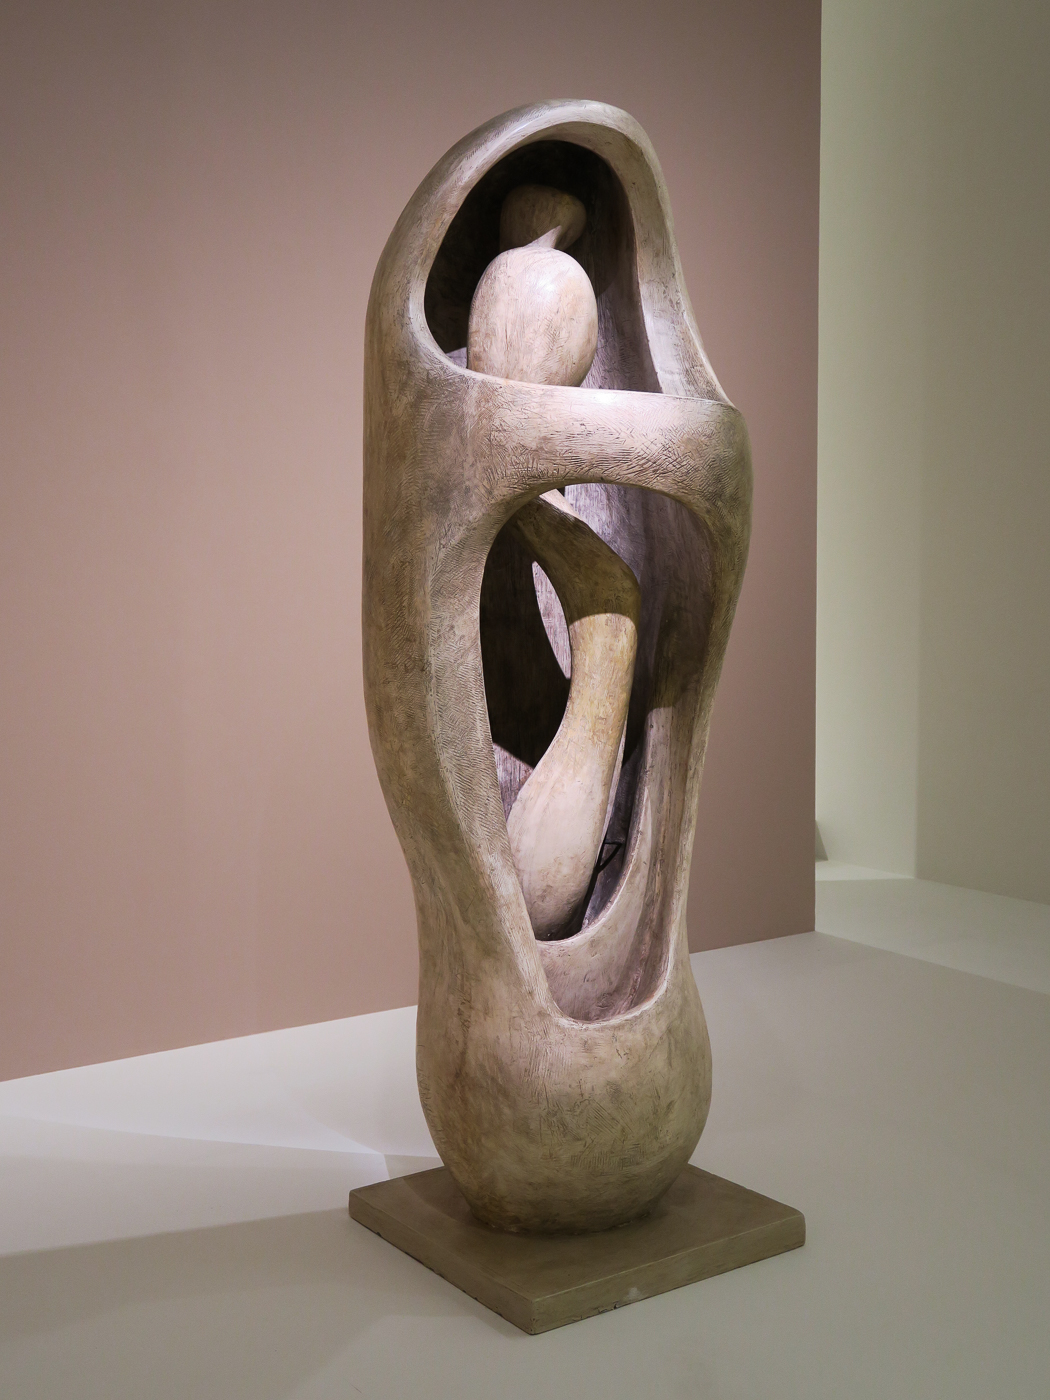 Henry Moore: Internal/external form (1952-53)